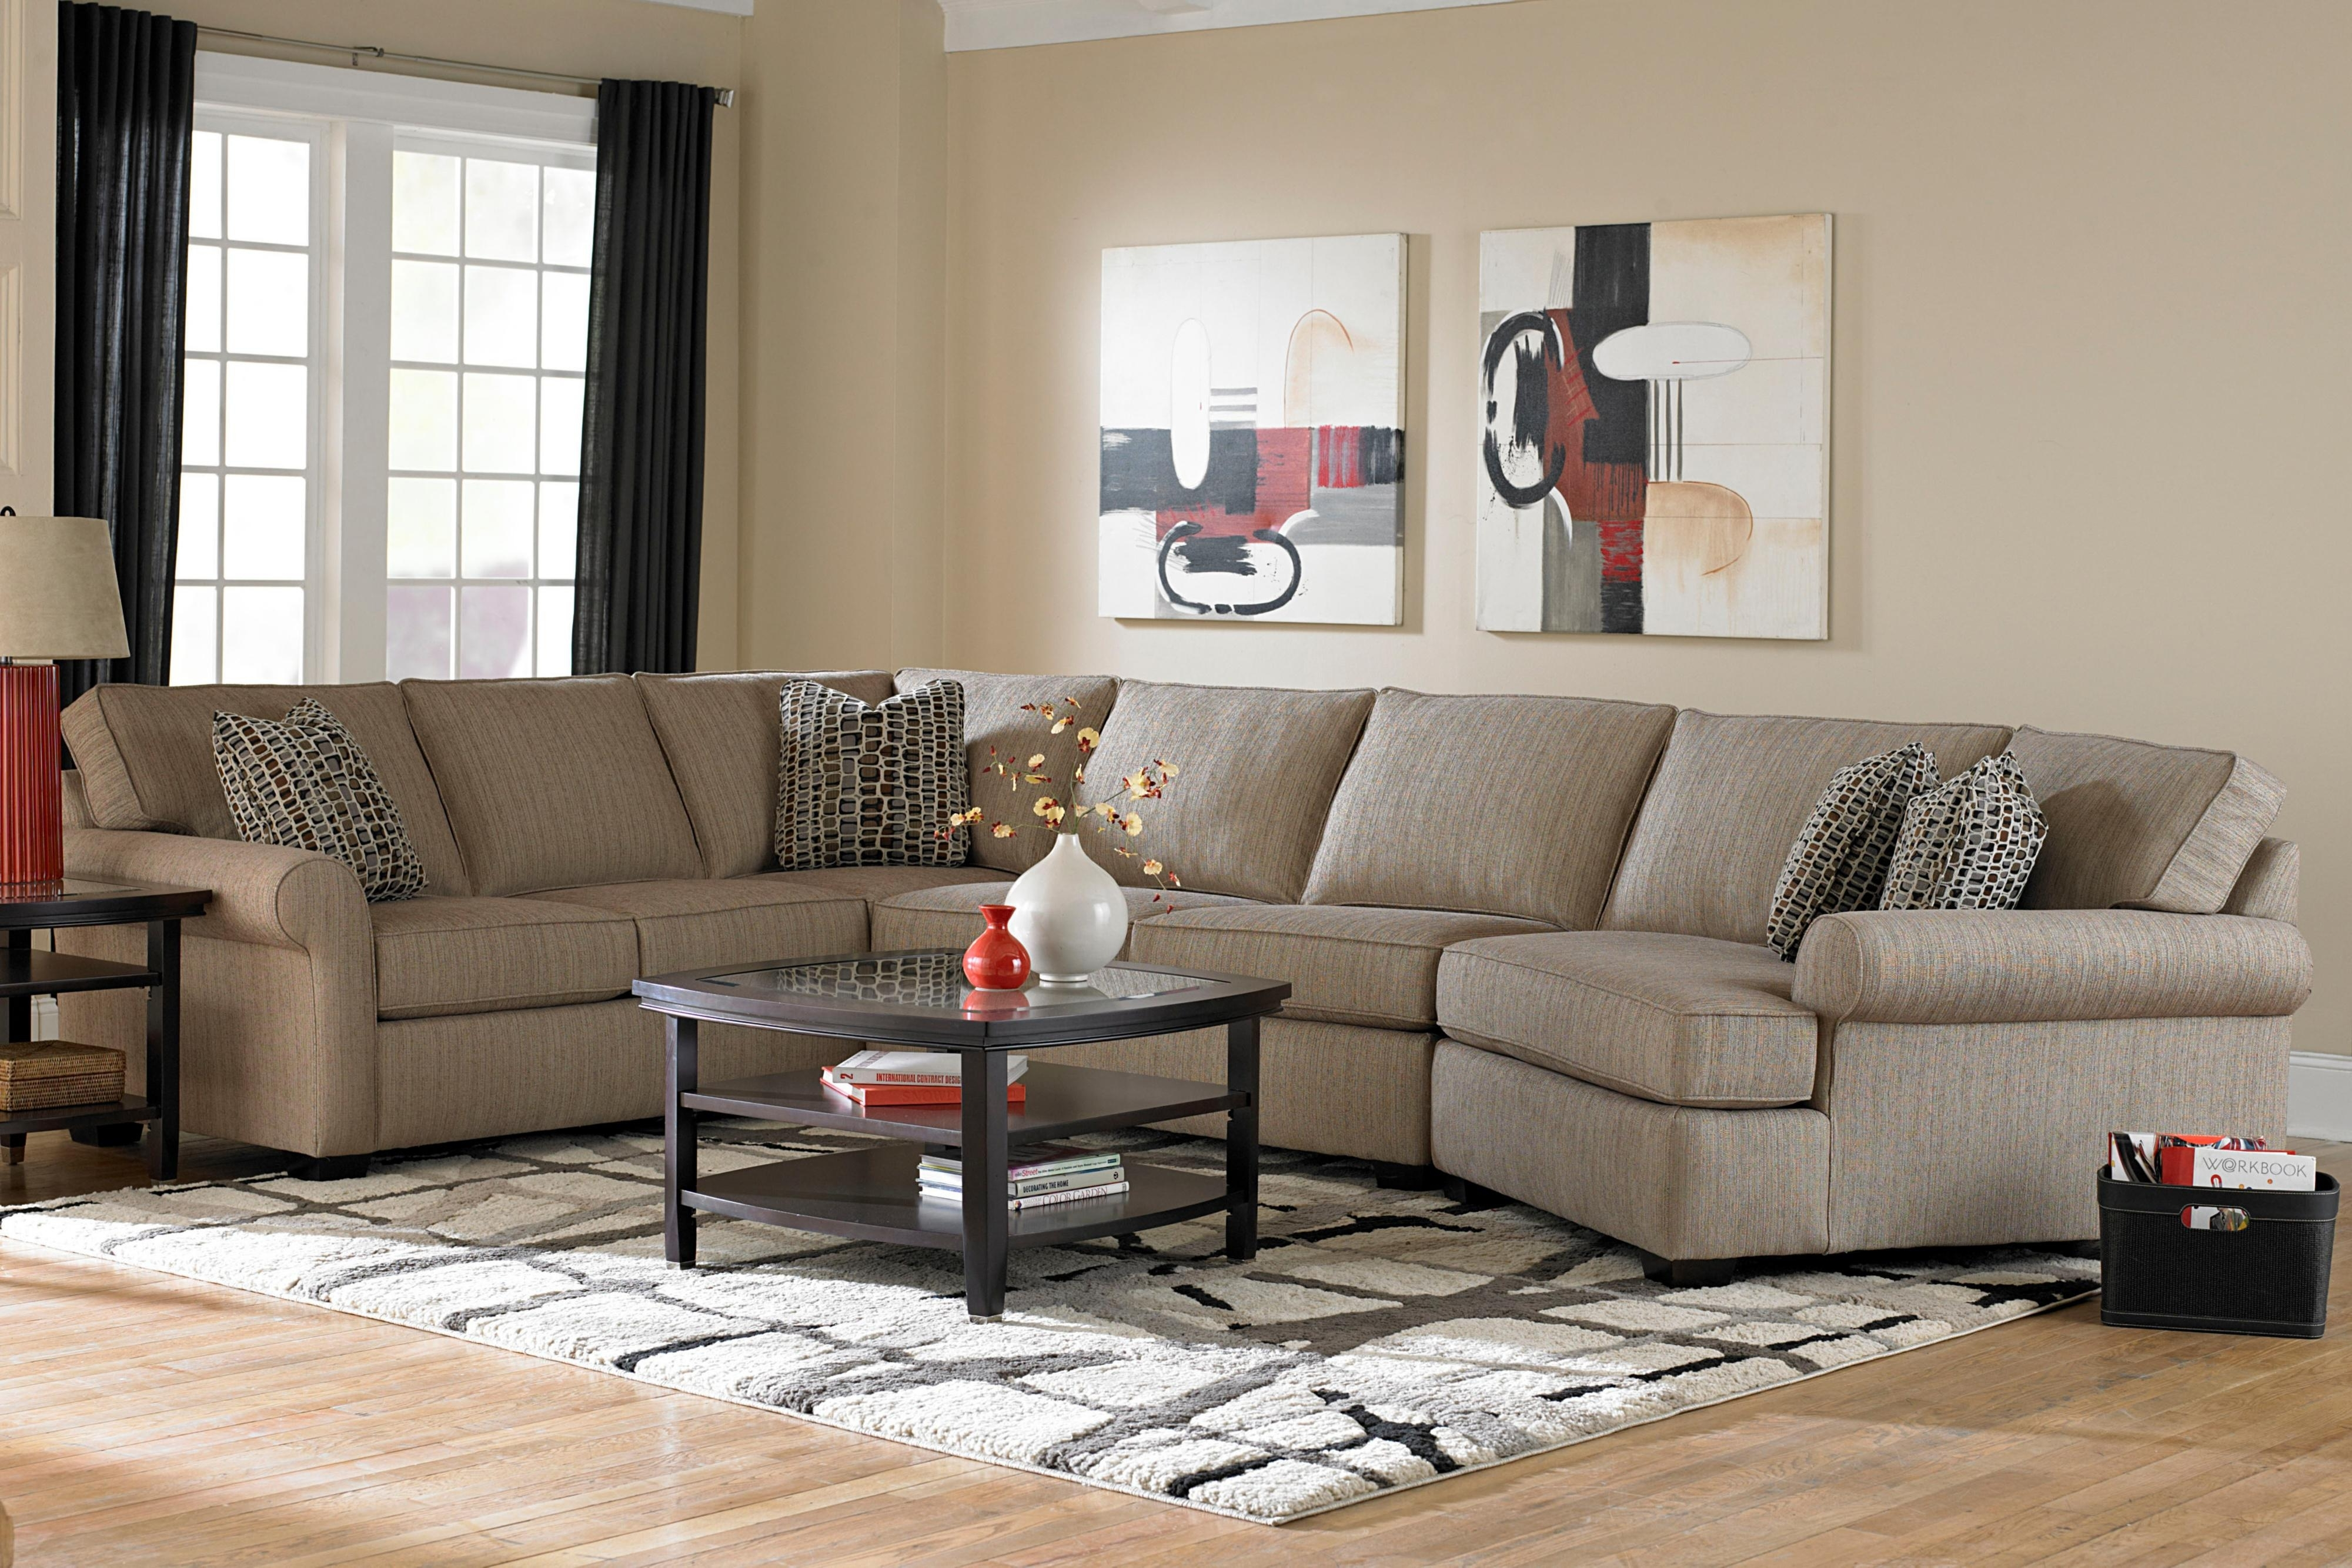 Thomasville Sectional Sofas For Most Recently Released Furniture: Thomasville Furniture Nj (View 7 of 15)